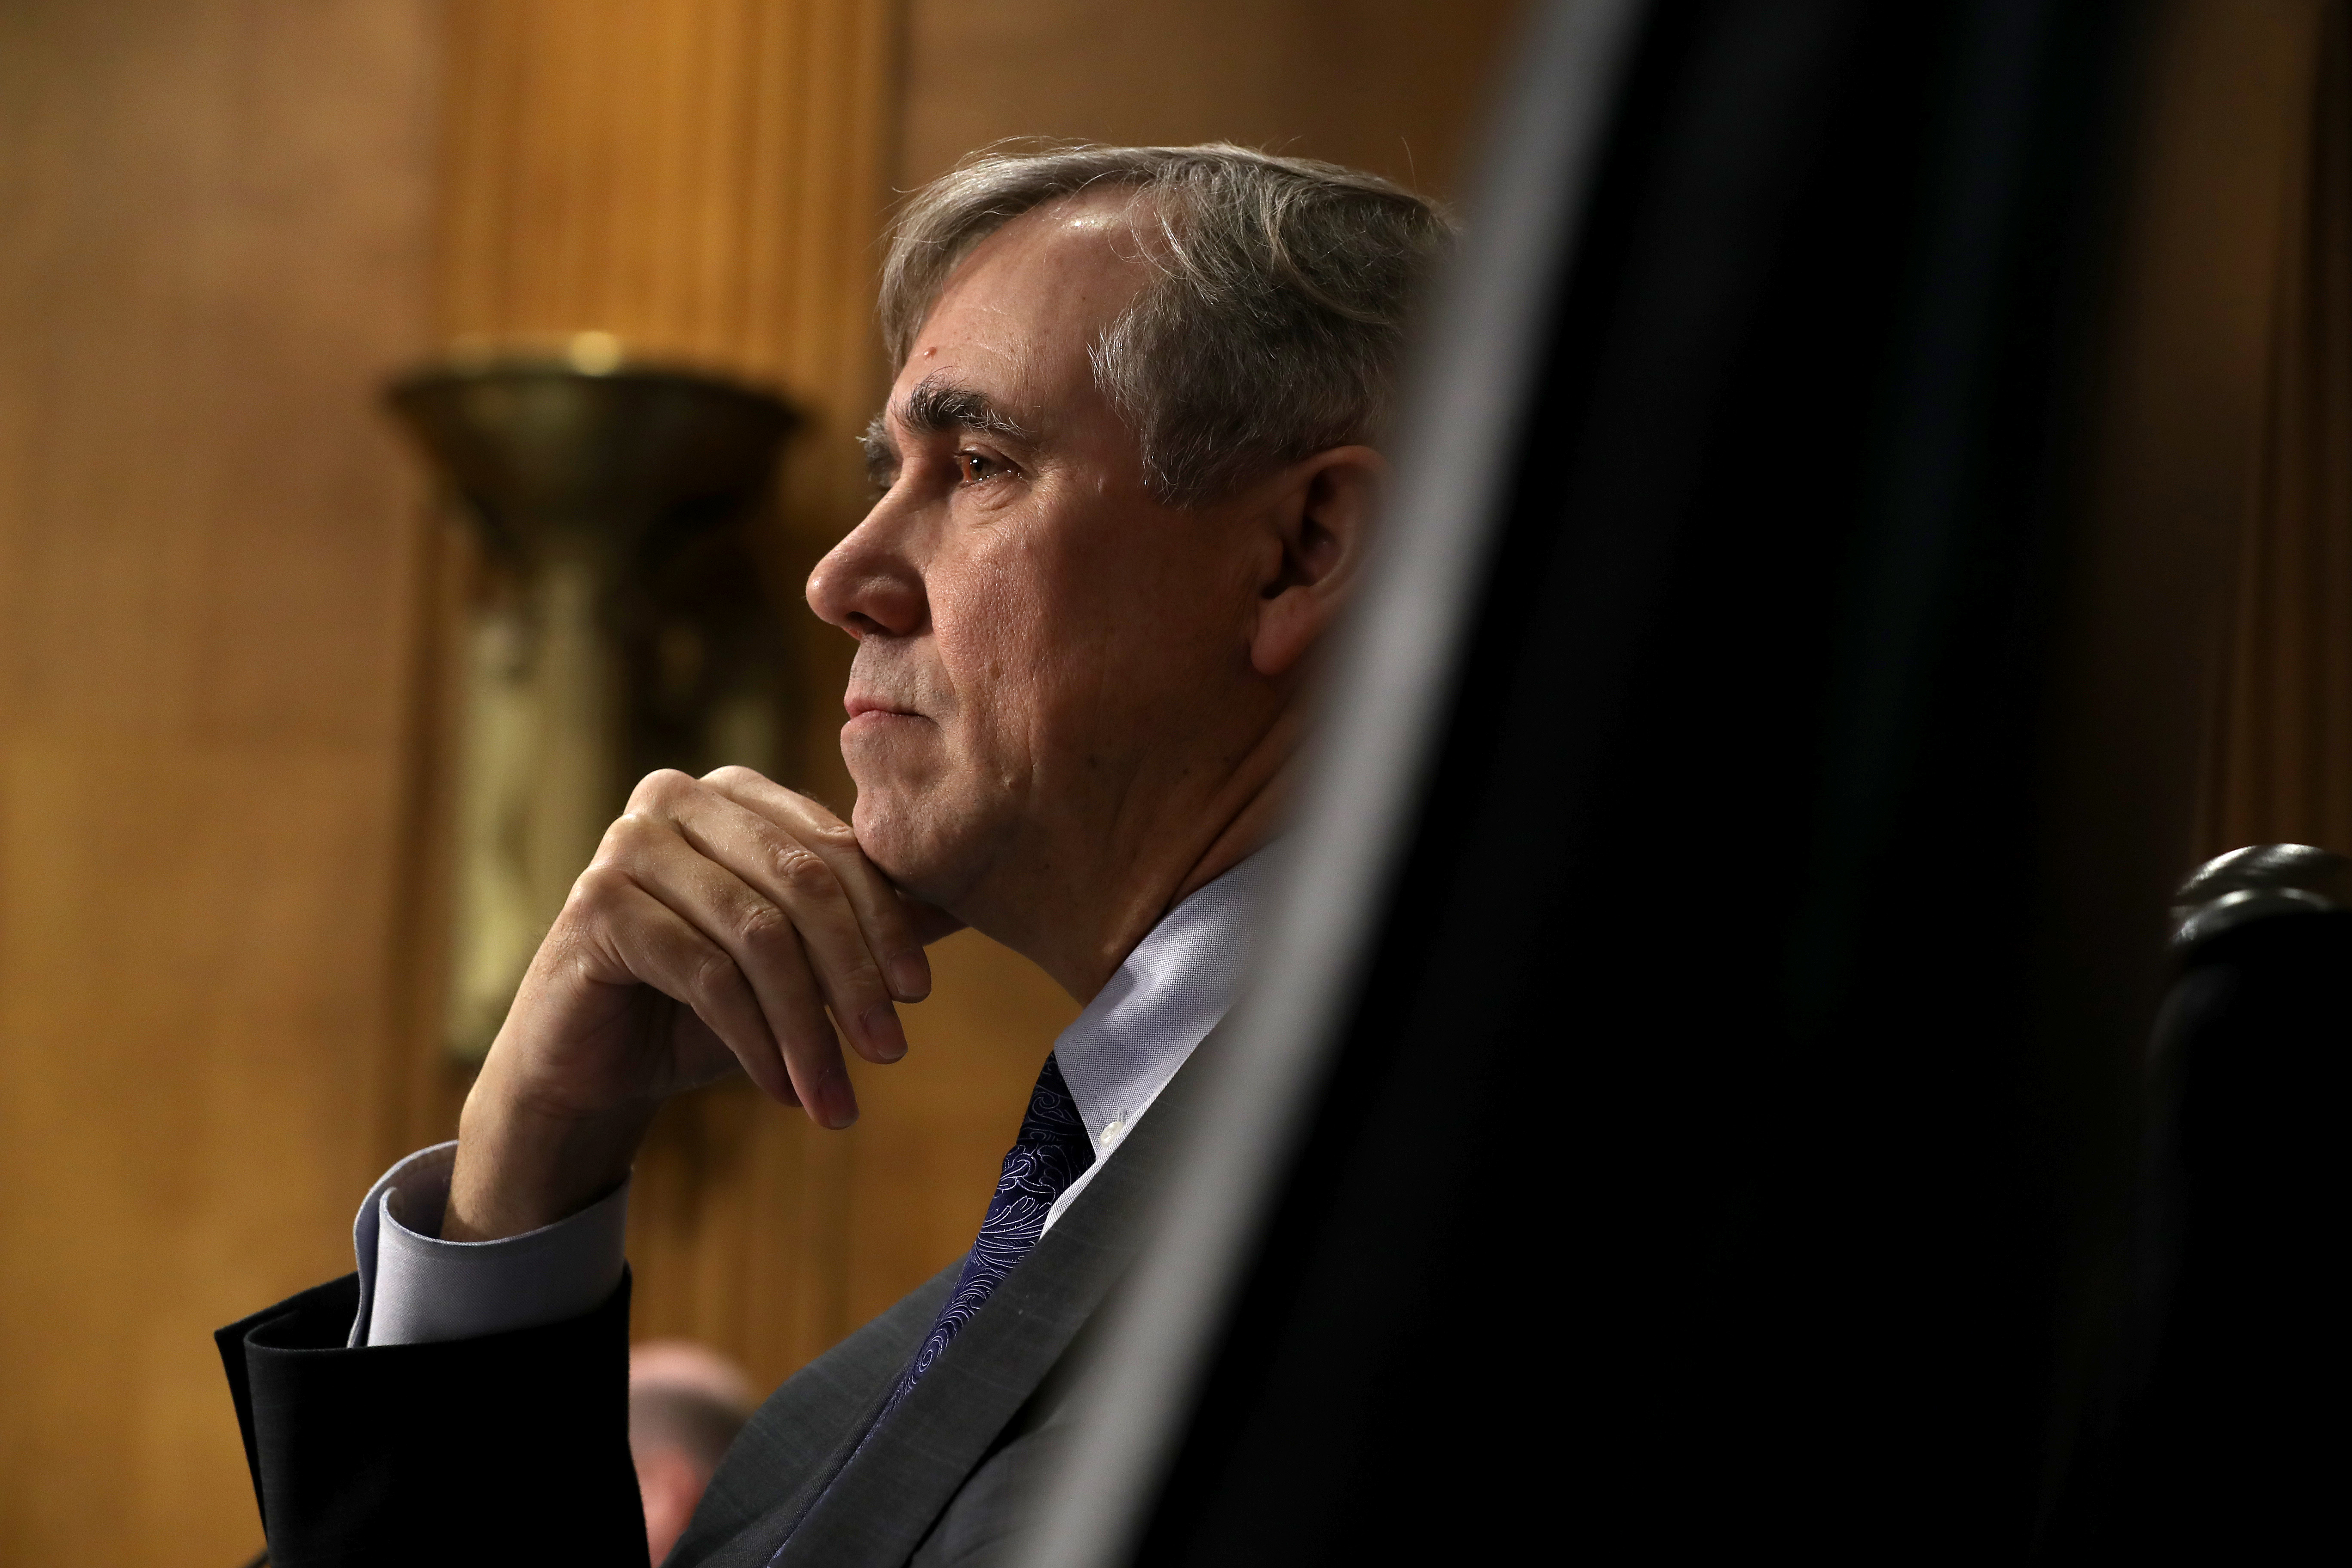 Senate Foreign Relations Committee member Senator Jeff Merkley questions witnesses during a hearing about US-Russia relations in the Dirksen Senate Office Building on Capitol Hill on December 3, 2019, in Washington, DC.